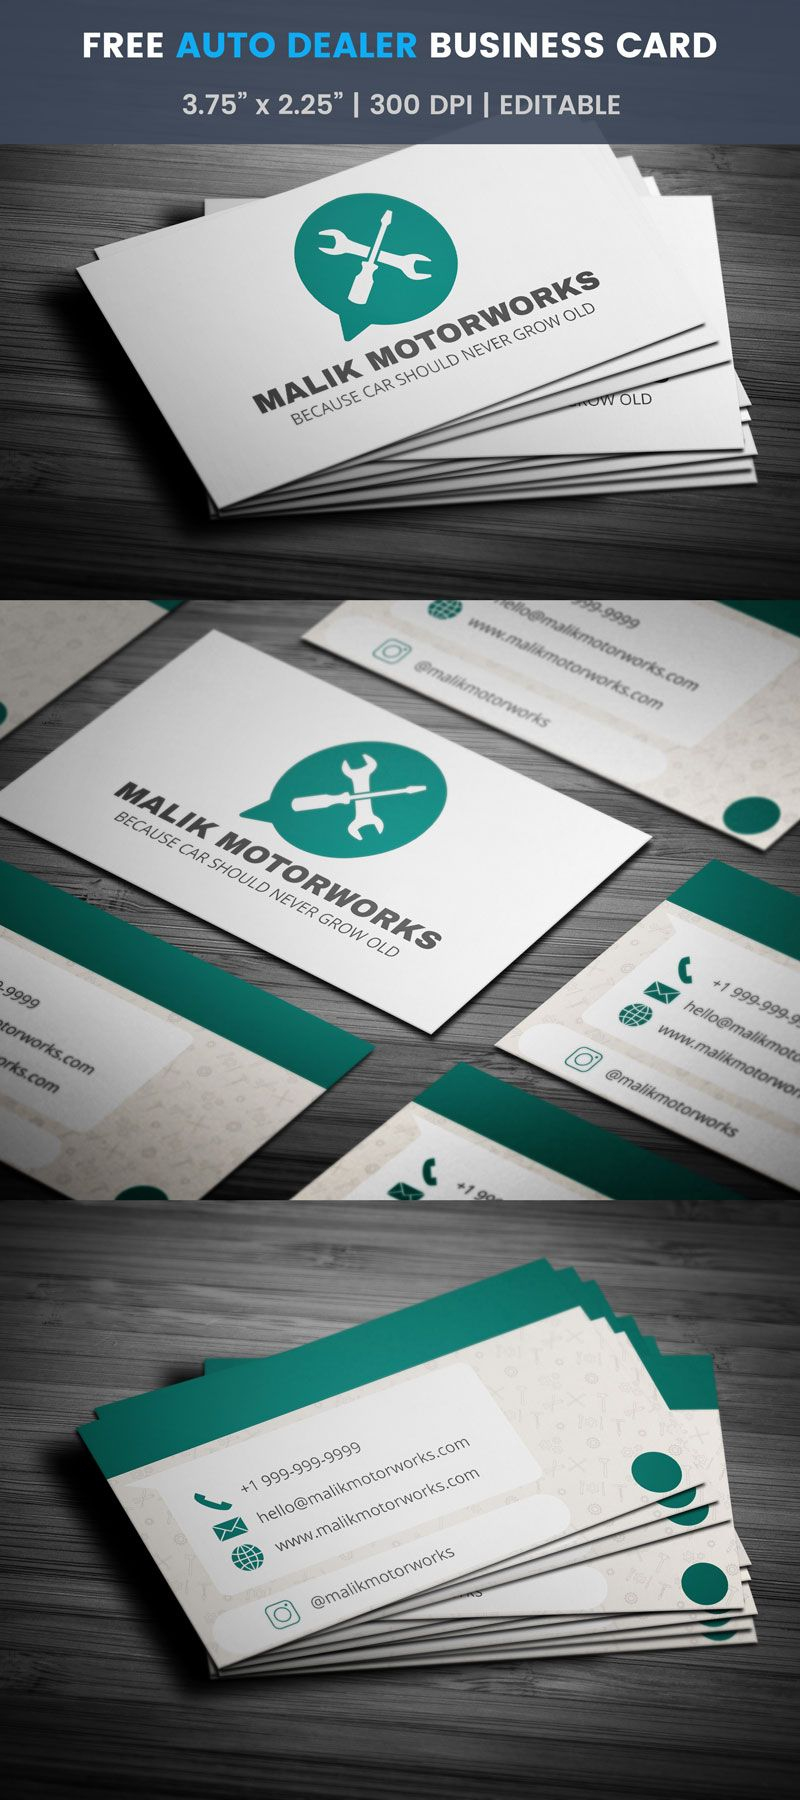 Free Whatsapp Themed Car Service Card | Business cards, Business and ...